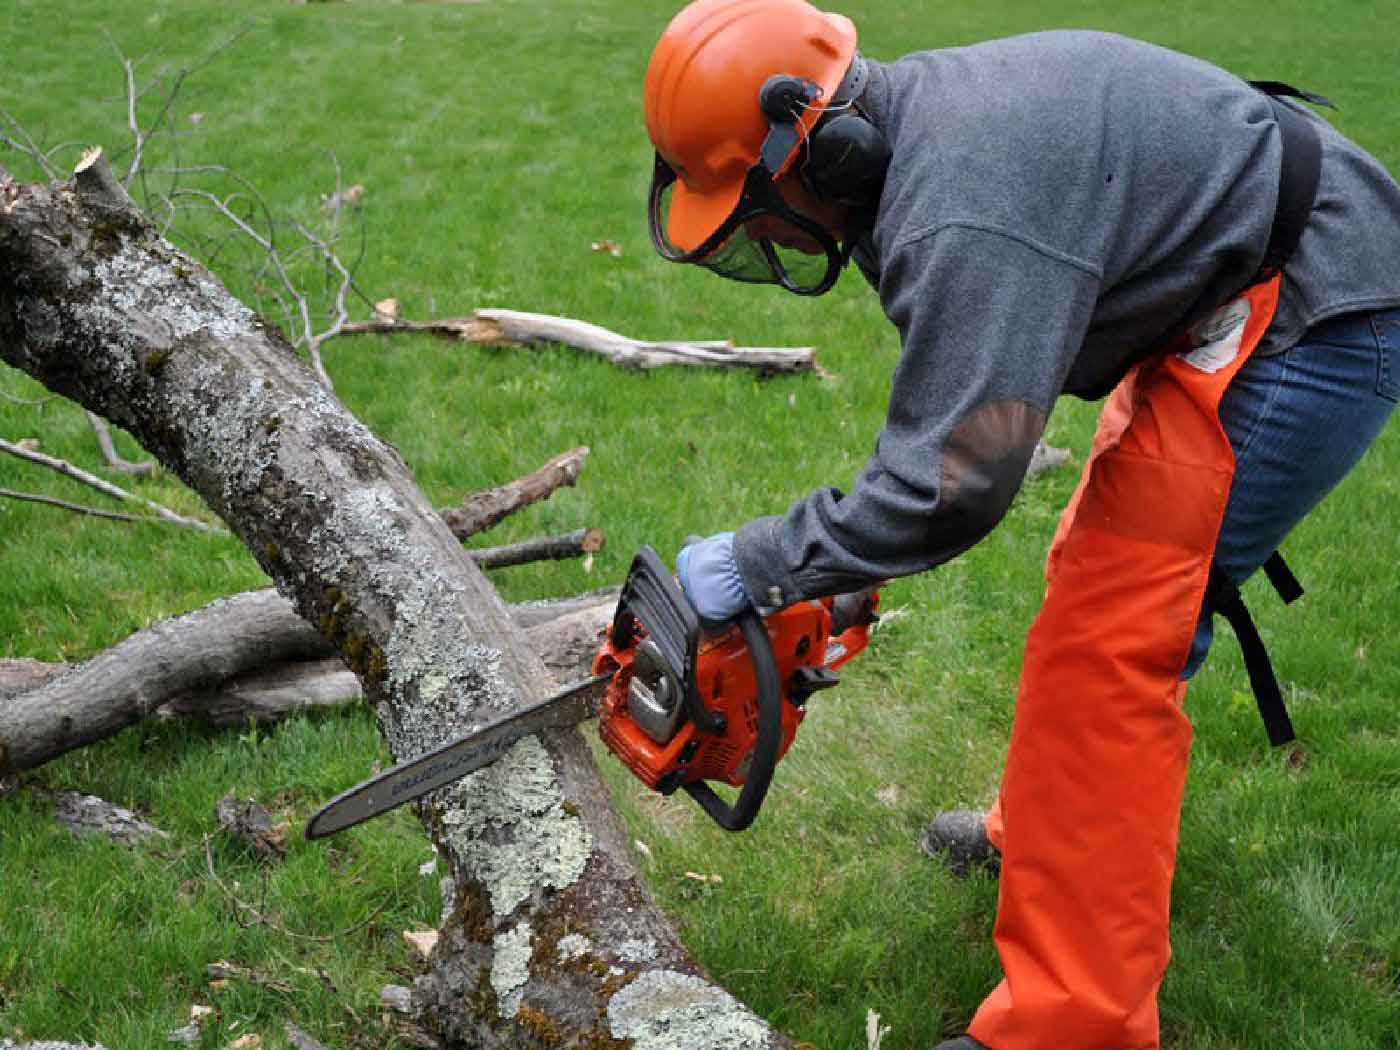 Fellers Tree Felling, Professional Tree Fellers, Very Good Rates, Tree Felling Services, Garden Cleaning Service, Excellent Safety And Service Record